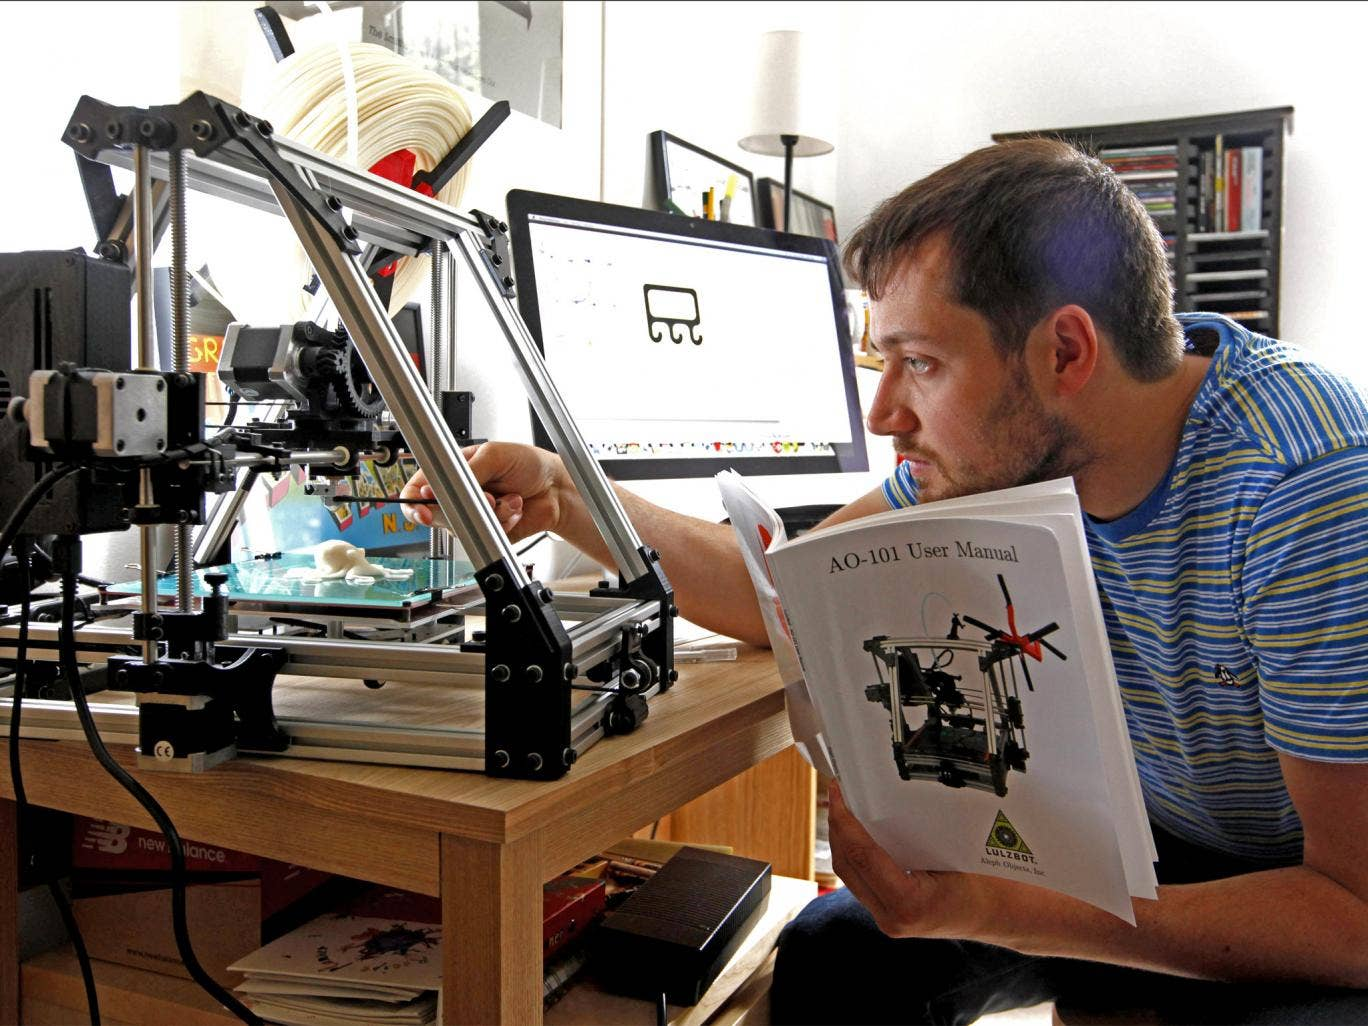 Home-baked idea: Will Dean struggles to get to grips with the Lulzbot 3D printer